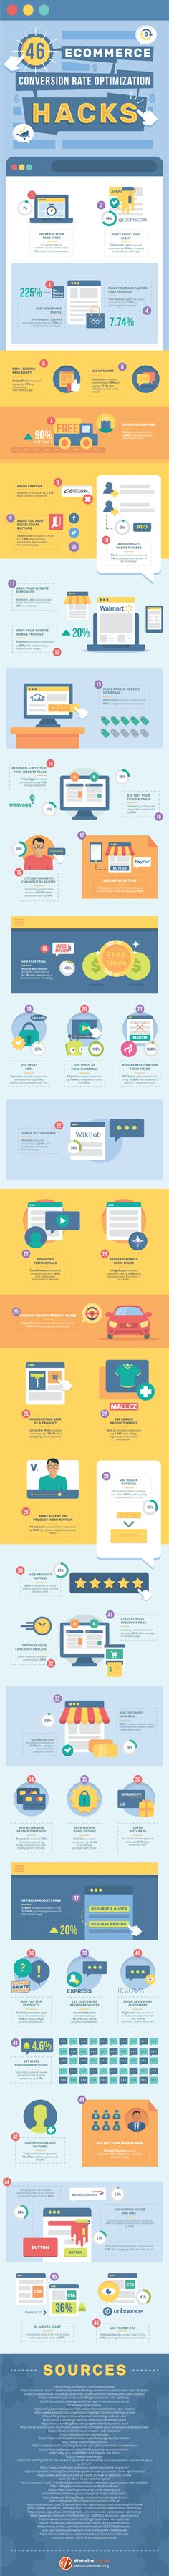 What Are 46 #eCommerce Rate Optimization Hacks? #infographic